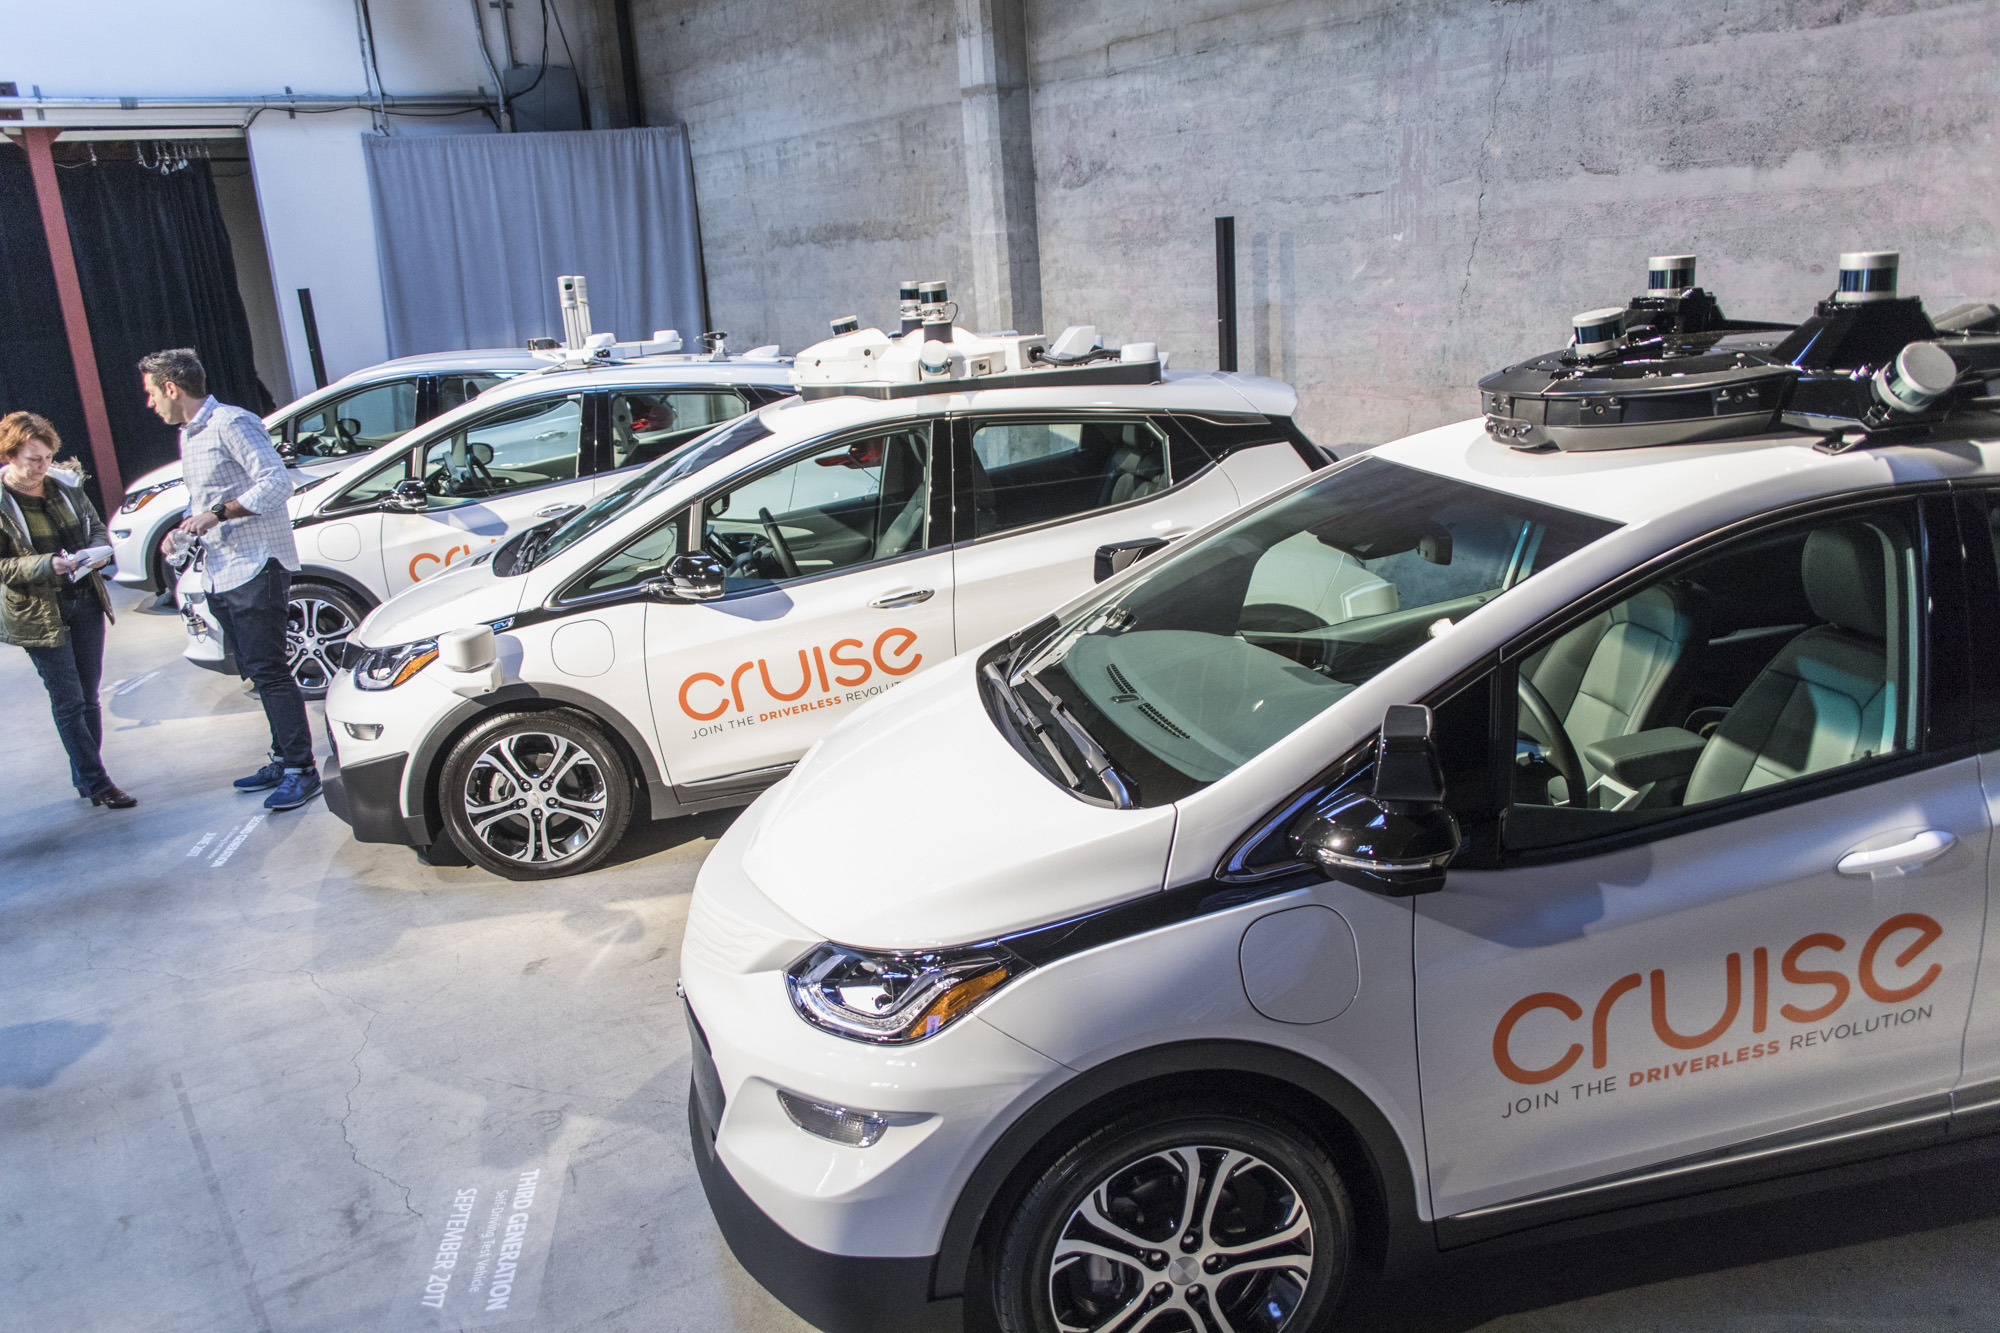 Cruise's self-driving launch plan doesn't include small-scale pilots like Waymo's